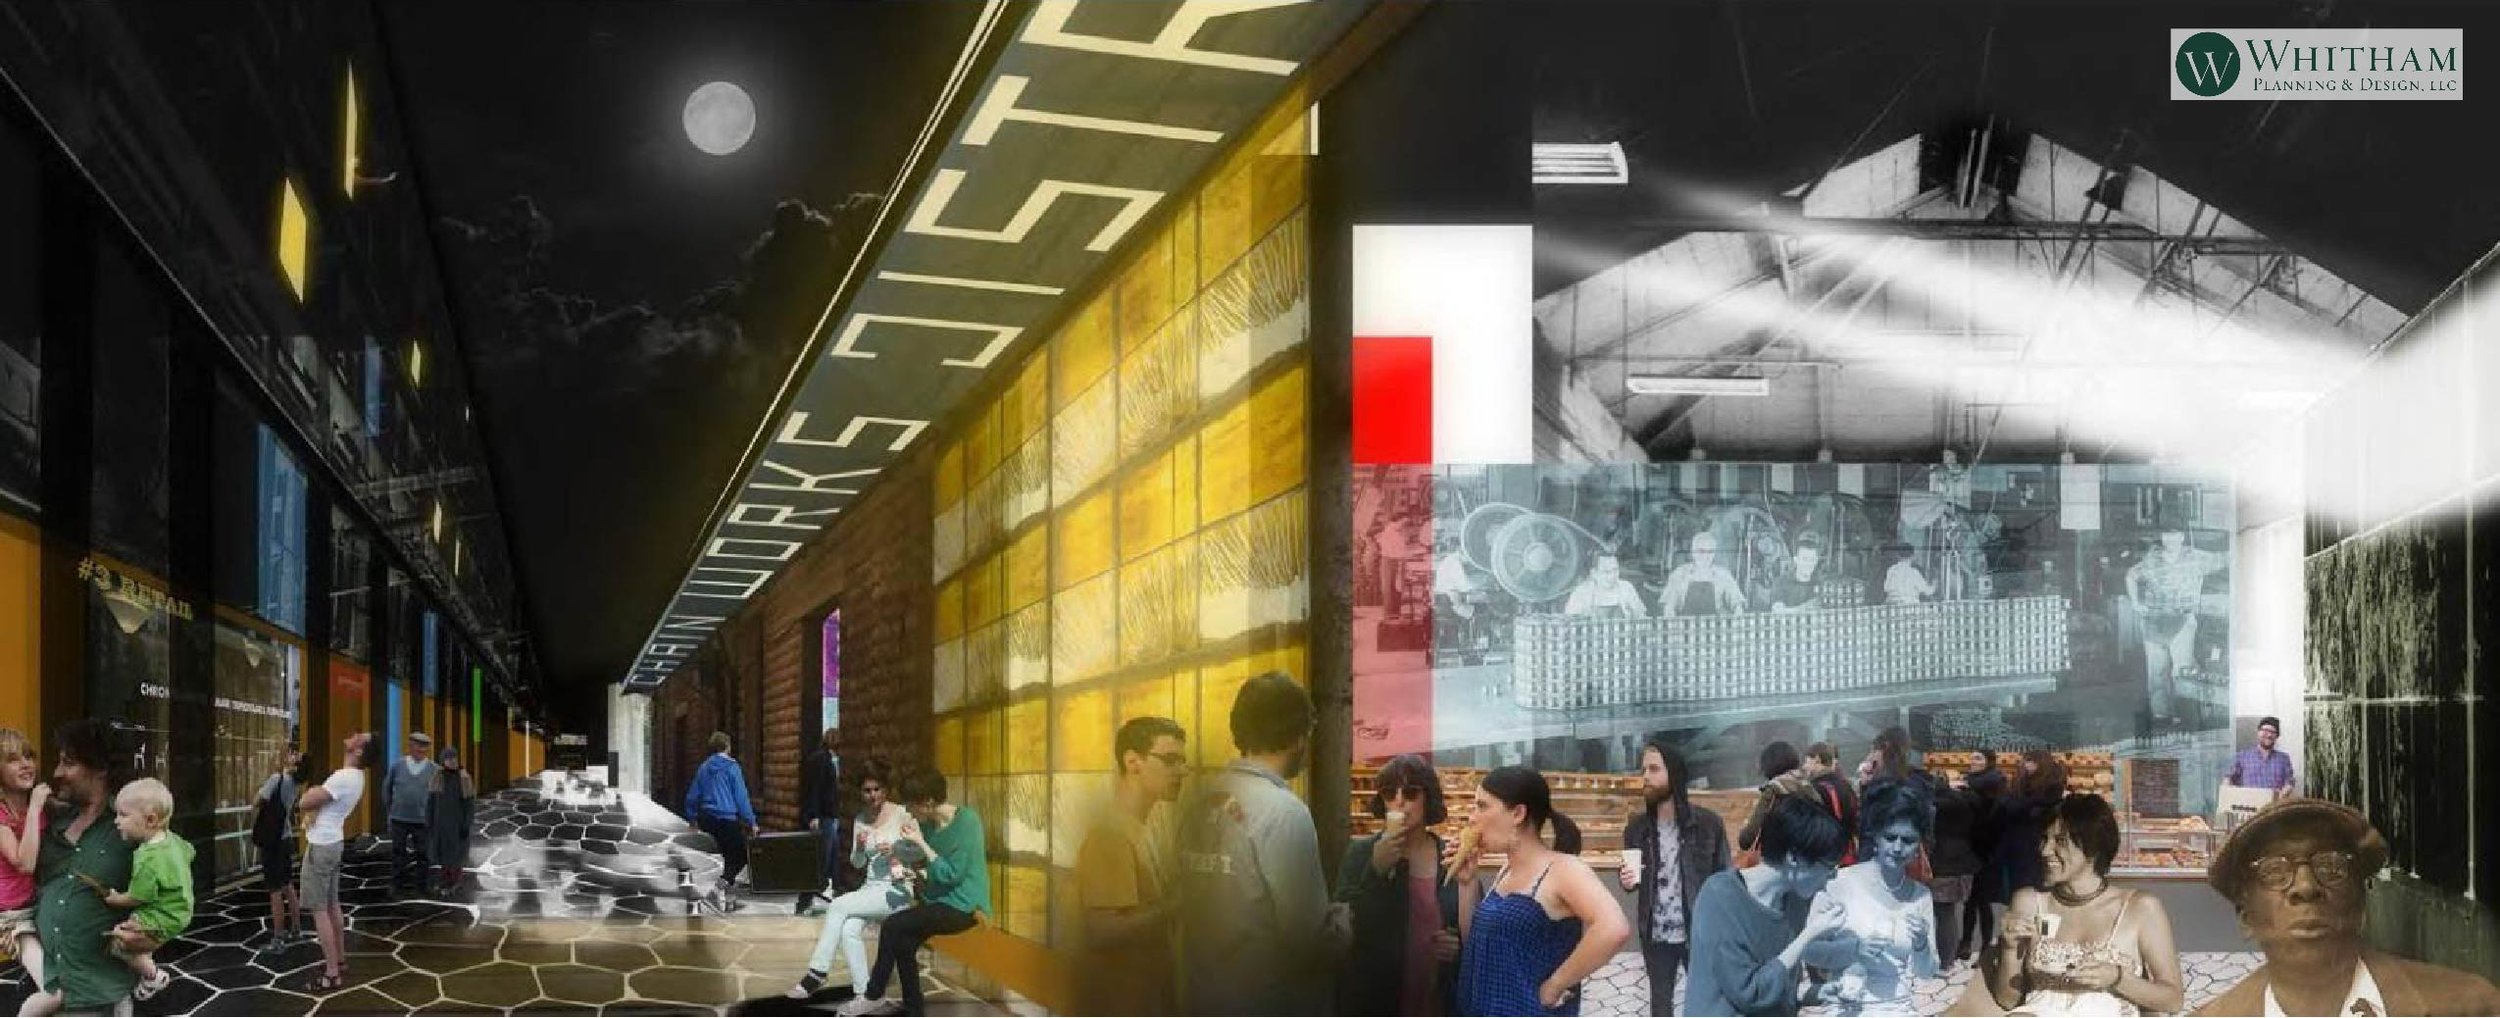 Chain-Works-Proposed-Perspective-Presentation 2014.08.01 15-01.jpg